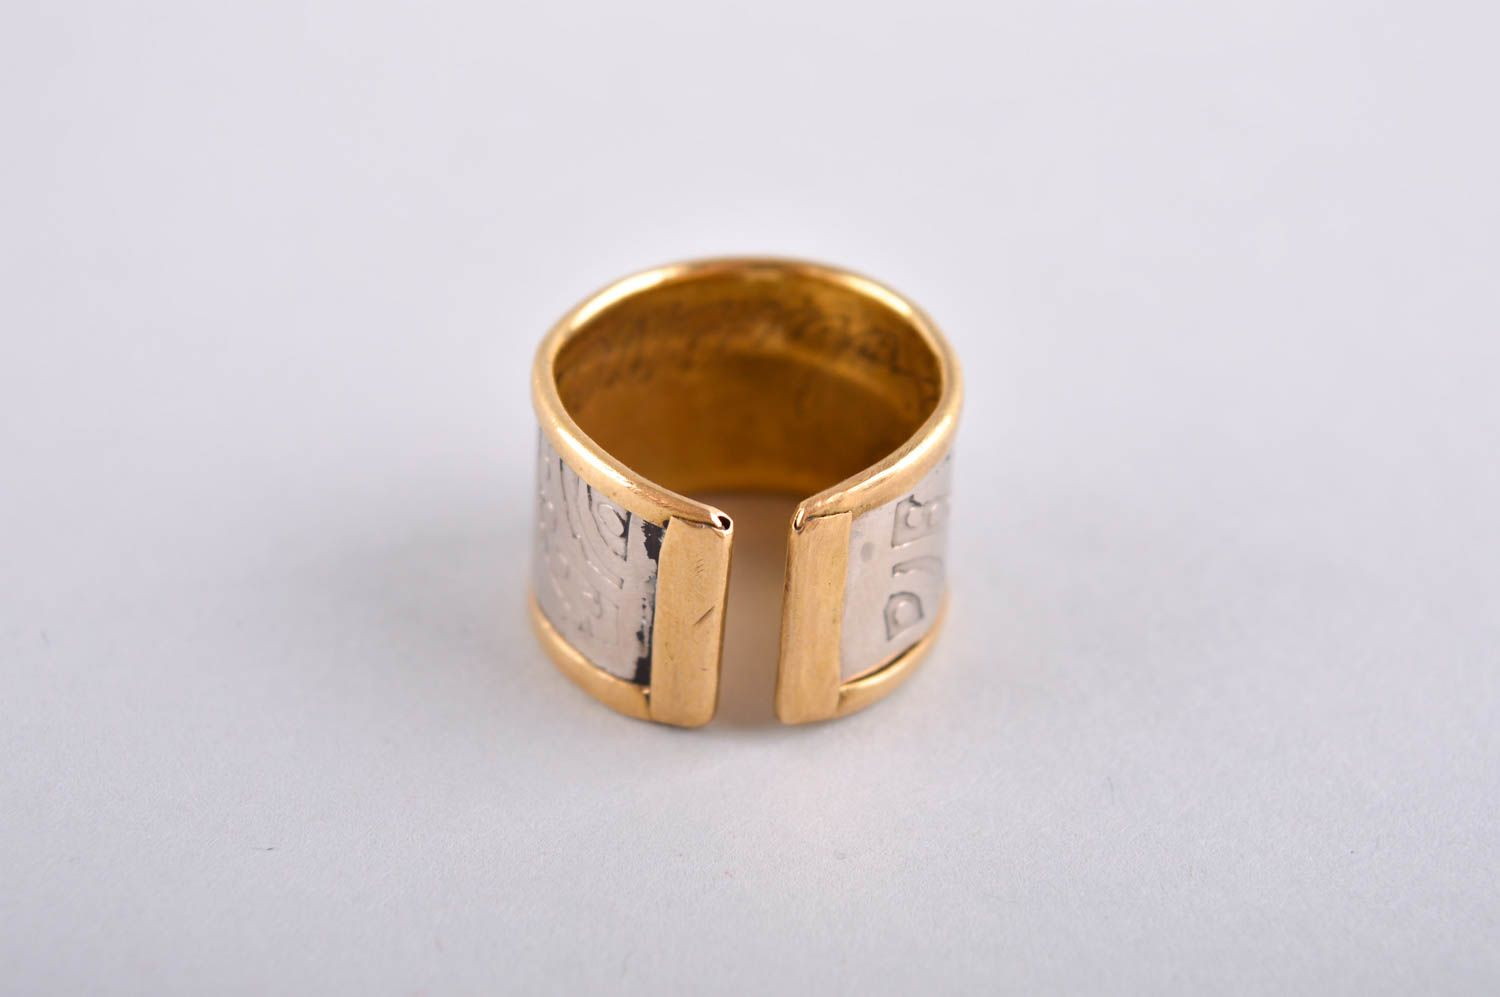 Designer ring unusual gift for women metal accessory brass ring unusual jewelry photo 4